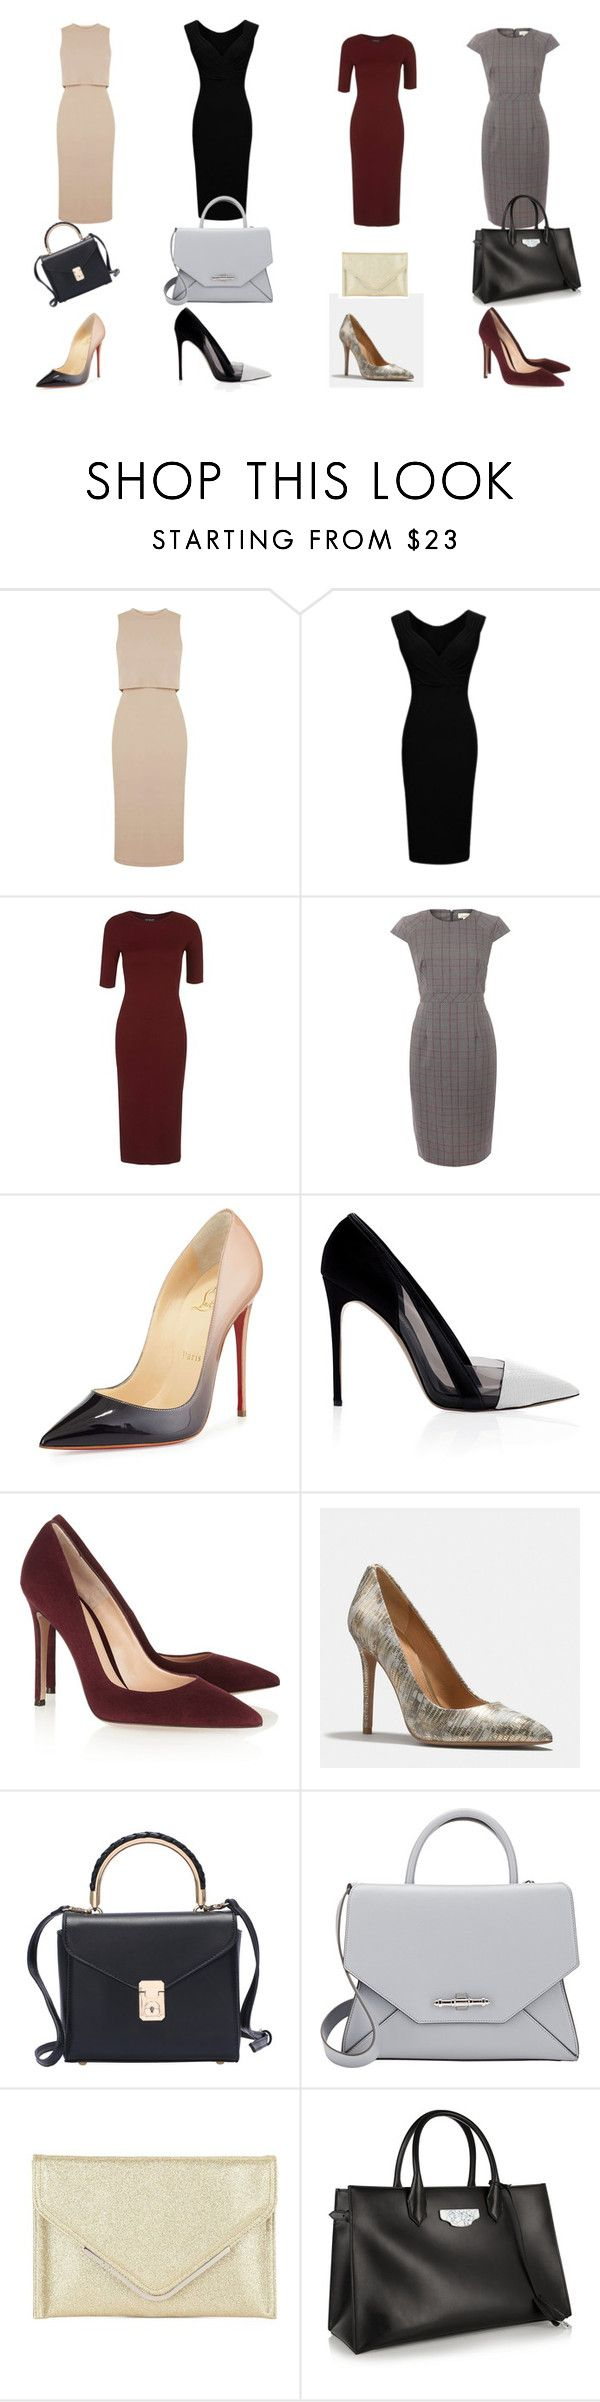 """Claire Underwood style"" by ilsec ❤ liked on Polyvore featuring Topshop, Christian Louboutin, Prabal Gurung, Gianvito Rossi, Coach, Givenchy, BCBGMAXAZRIA and Balenciaga"